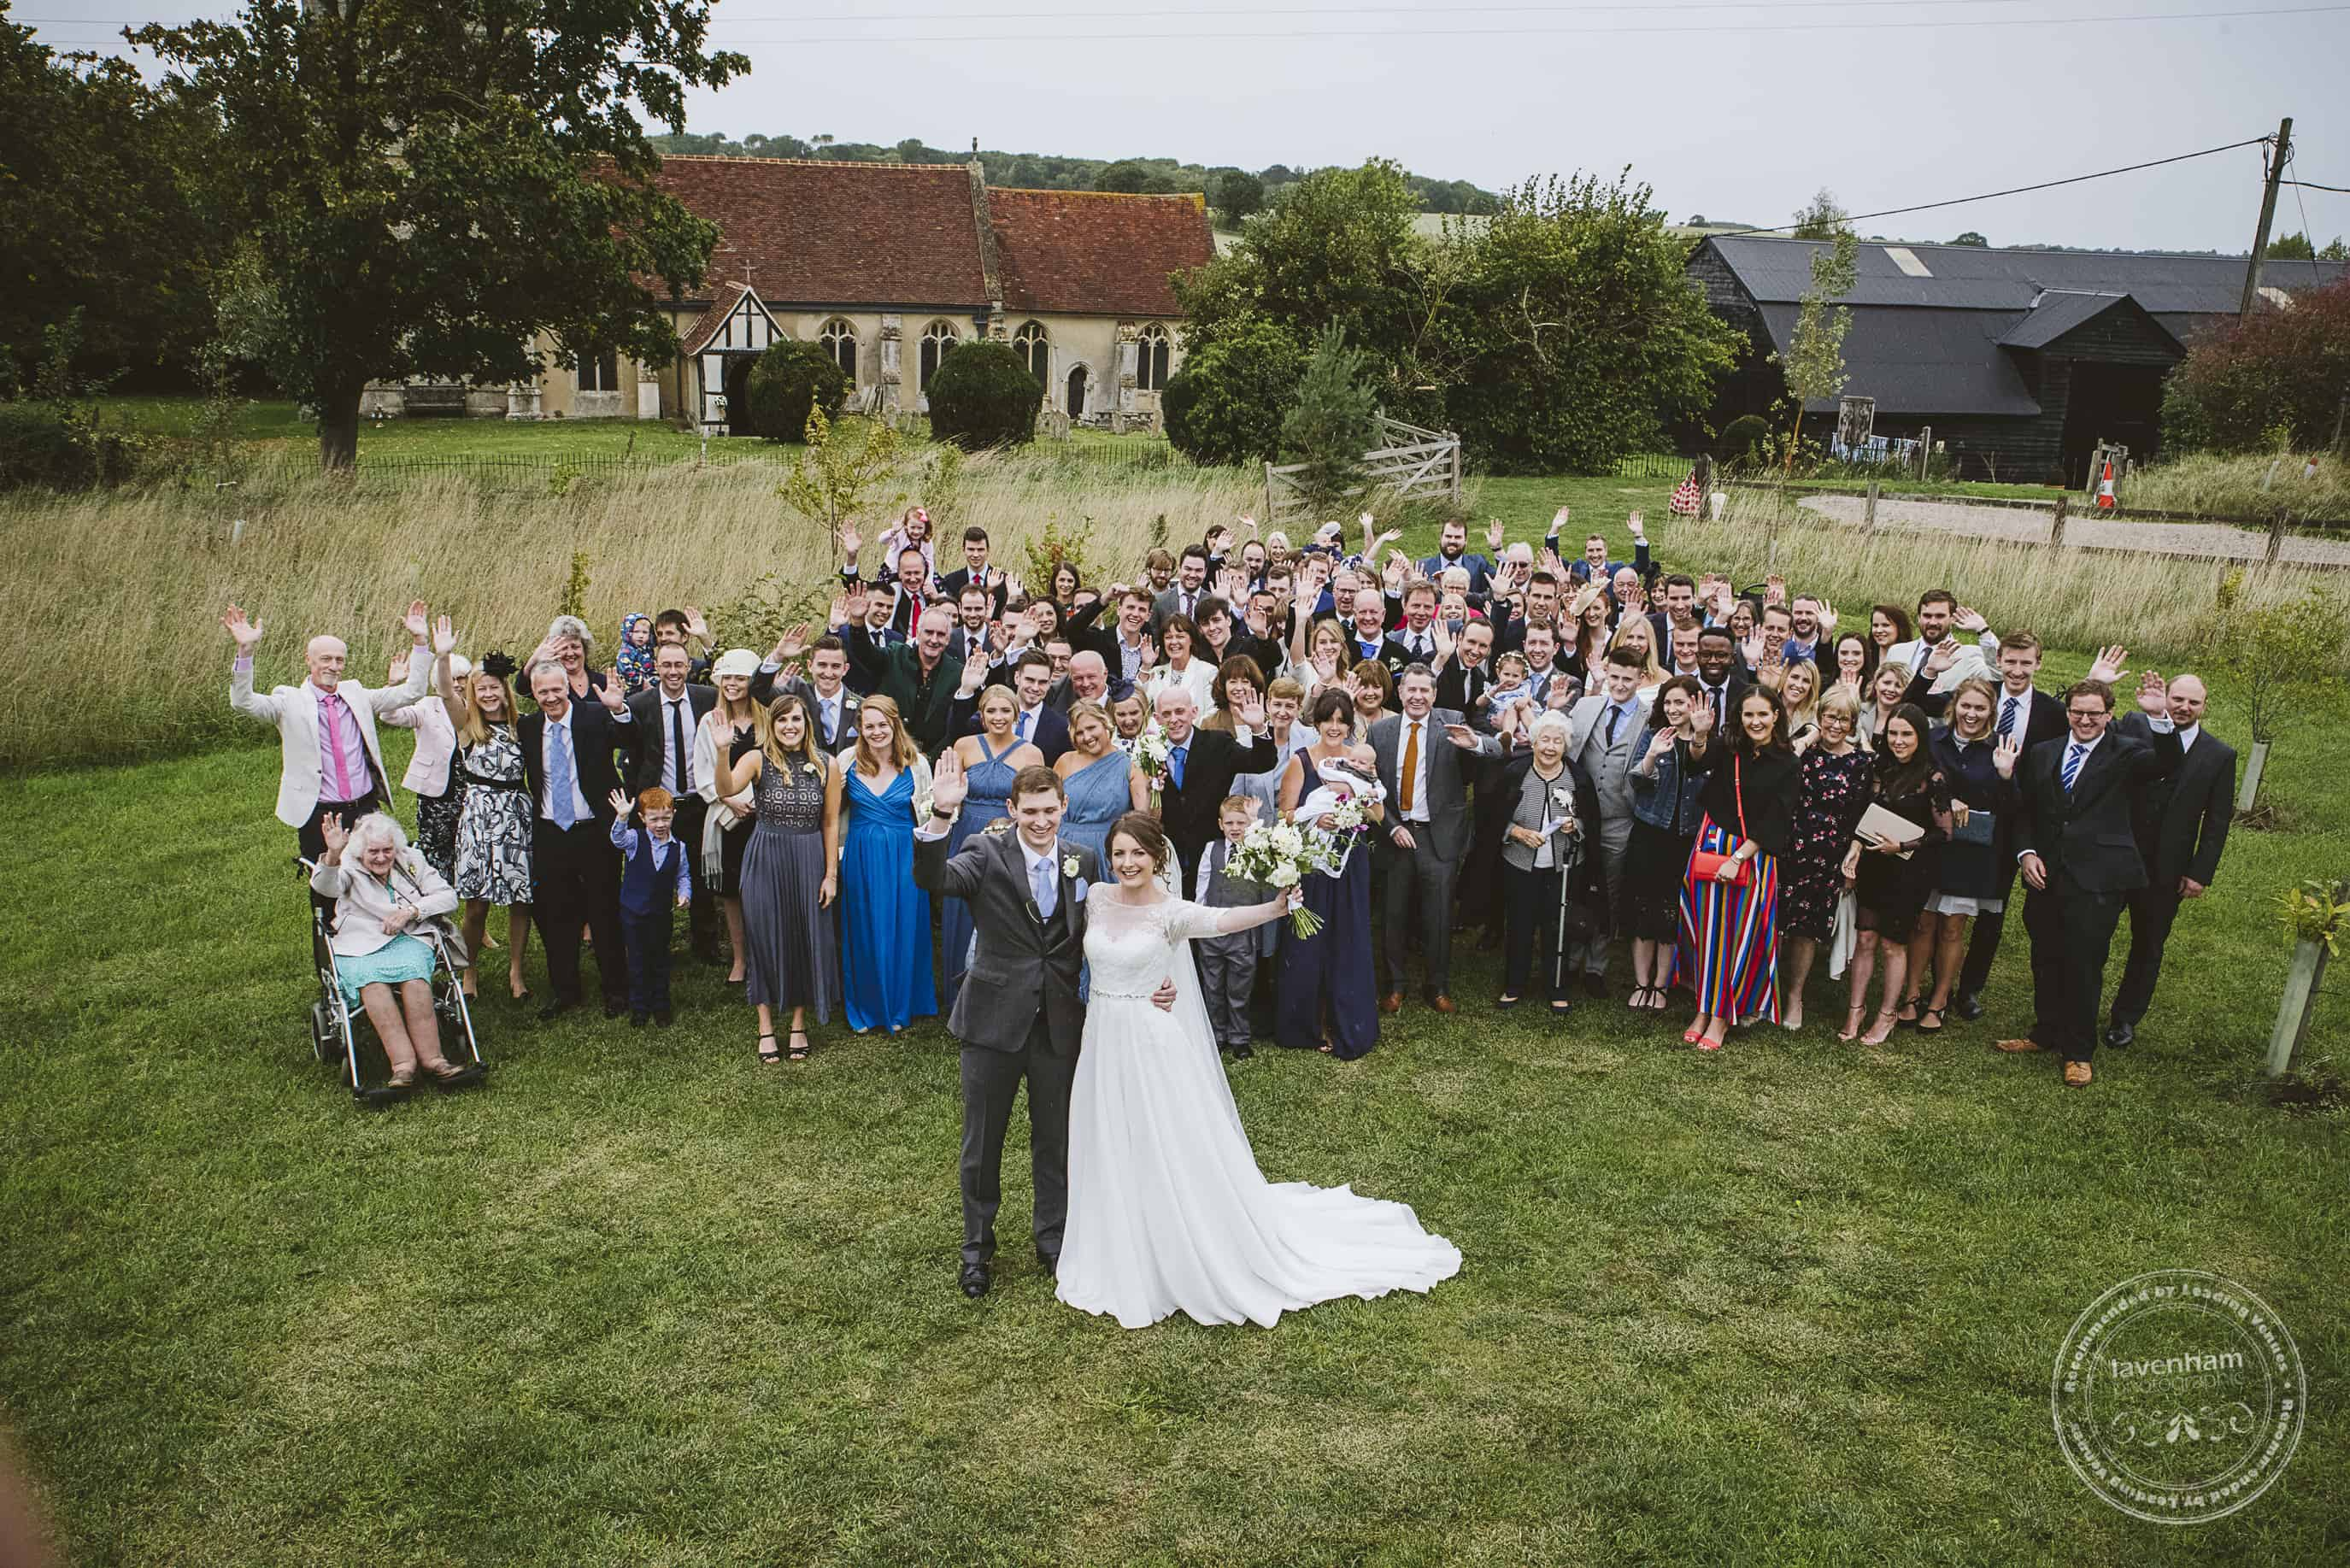 220918 Alpheton Barn Wedding Photography by Lavenham Photographic 073